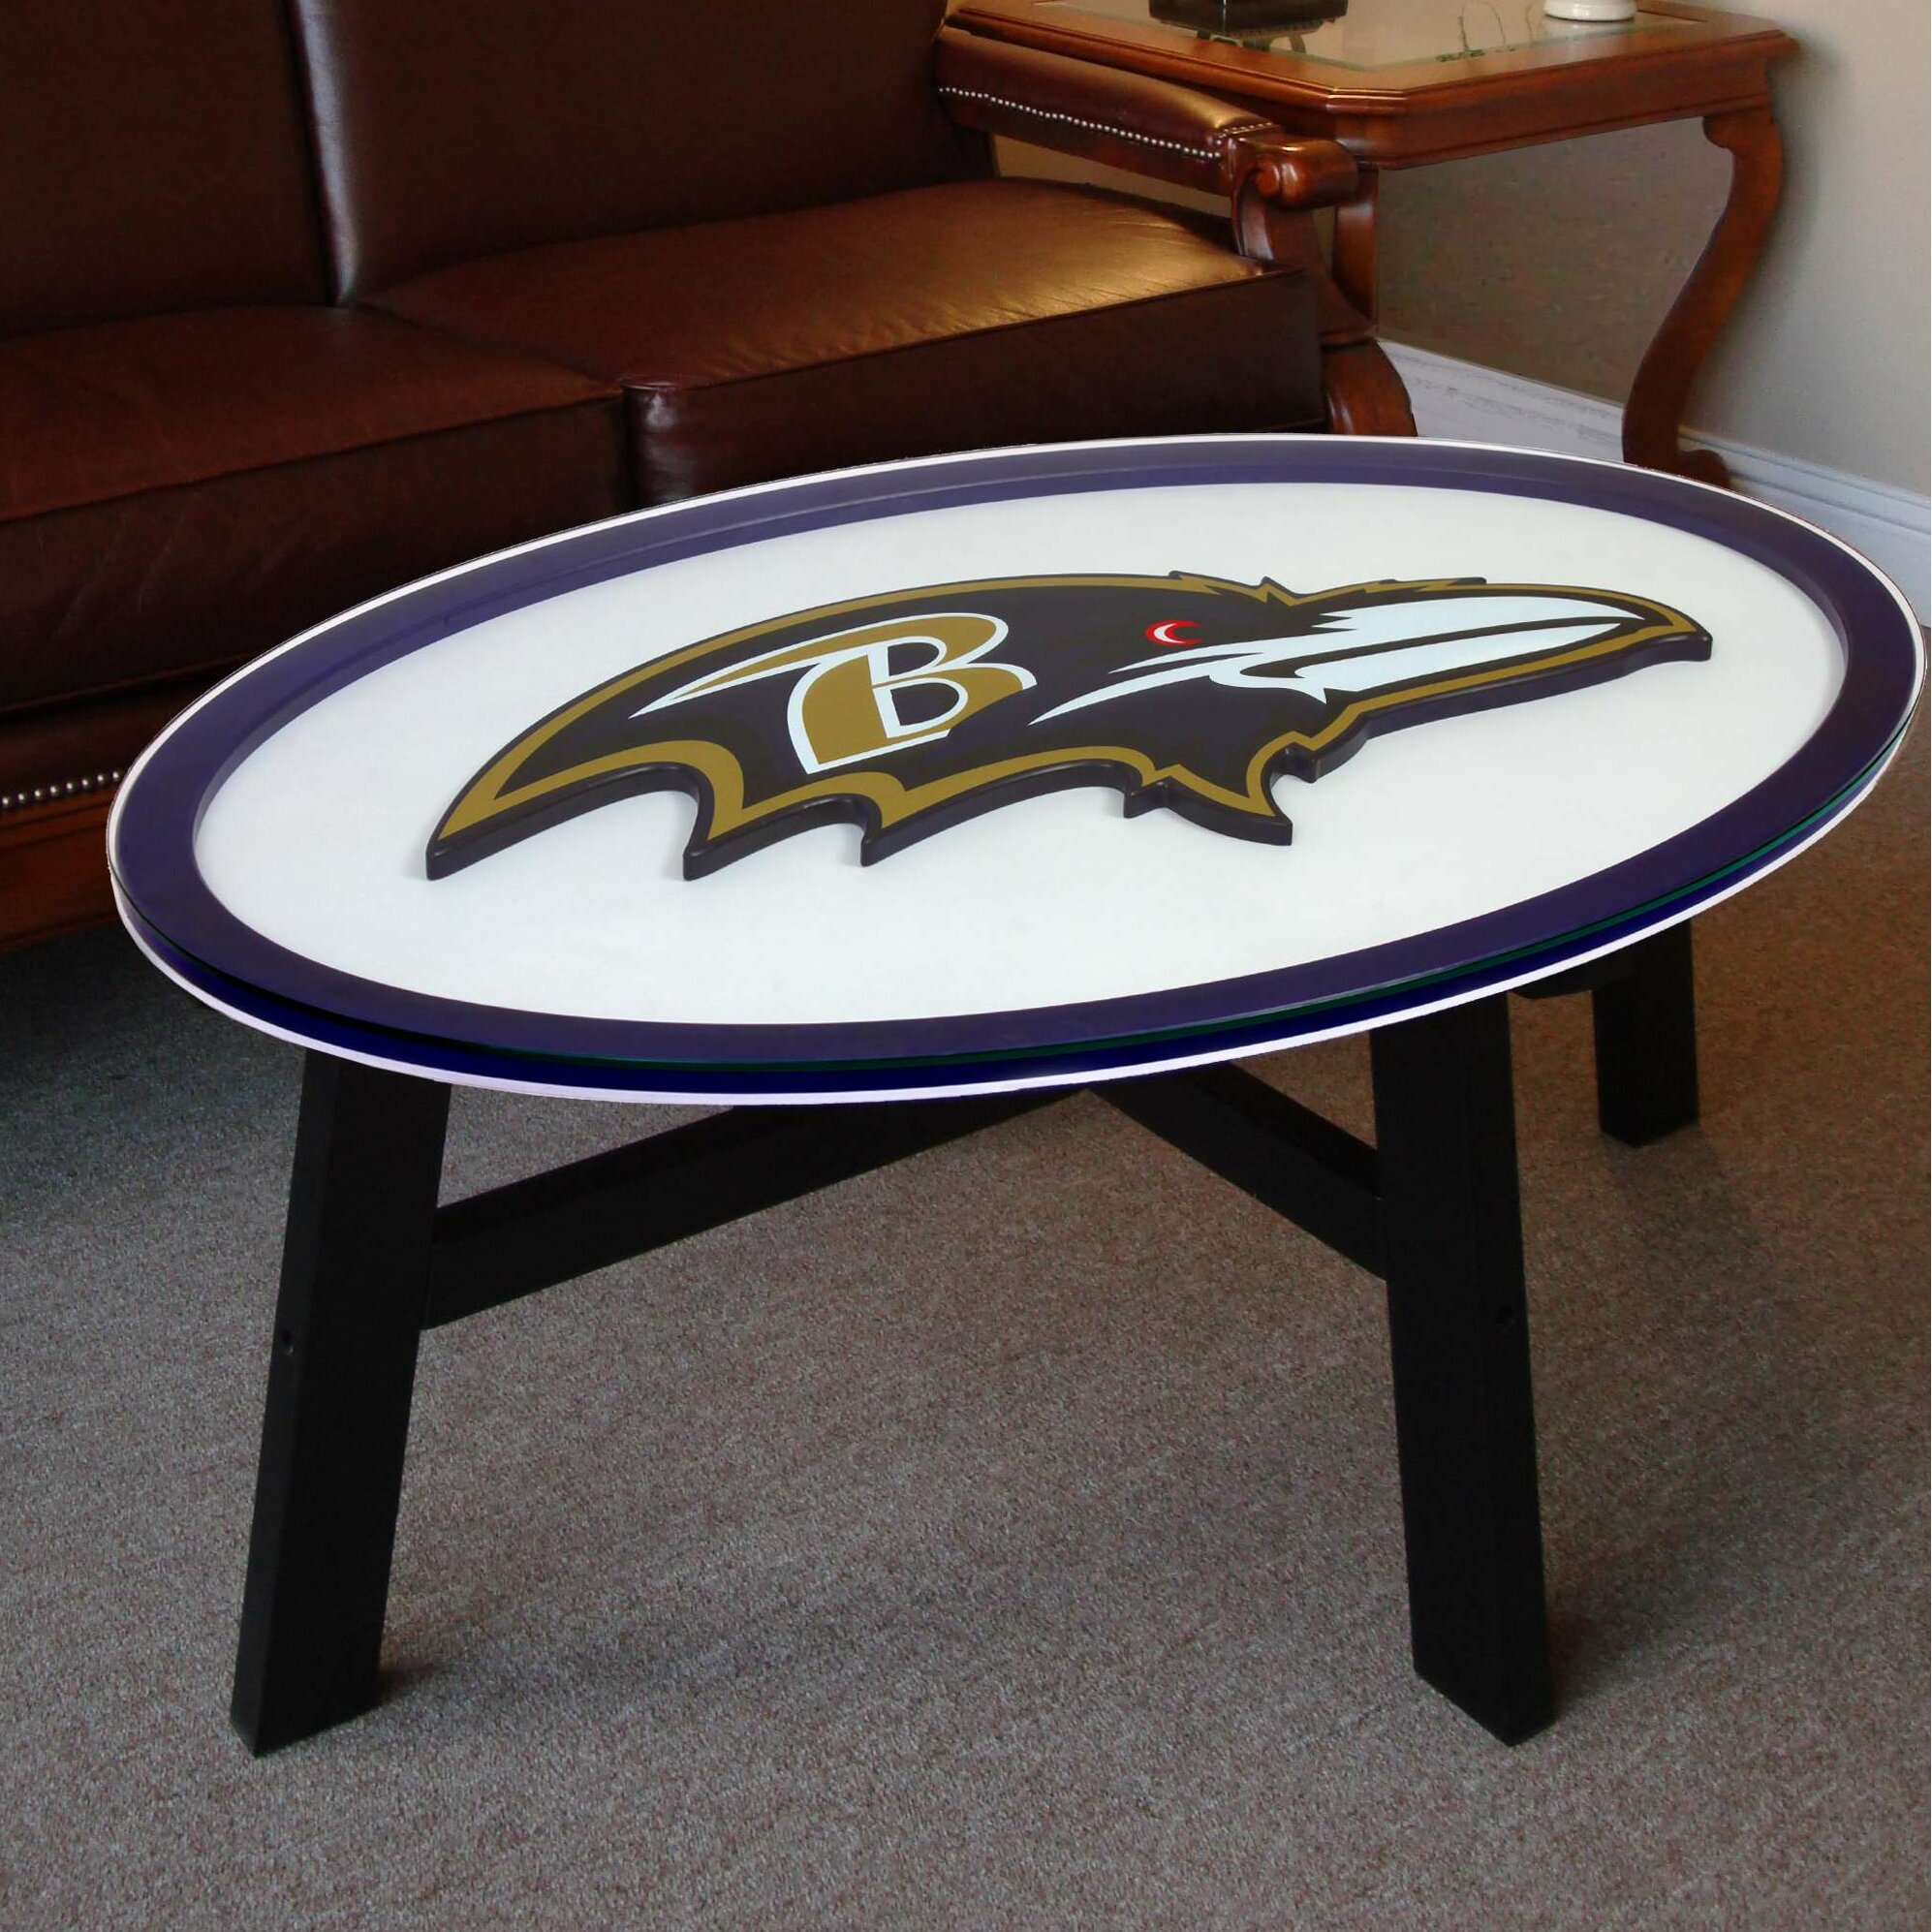 Fan Creations Nfl Logo Coffee Table Amp Reviews Wayfair Ca